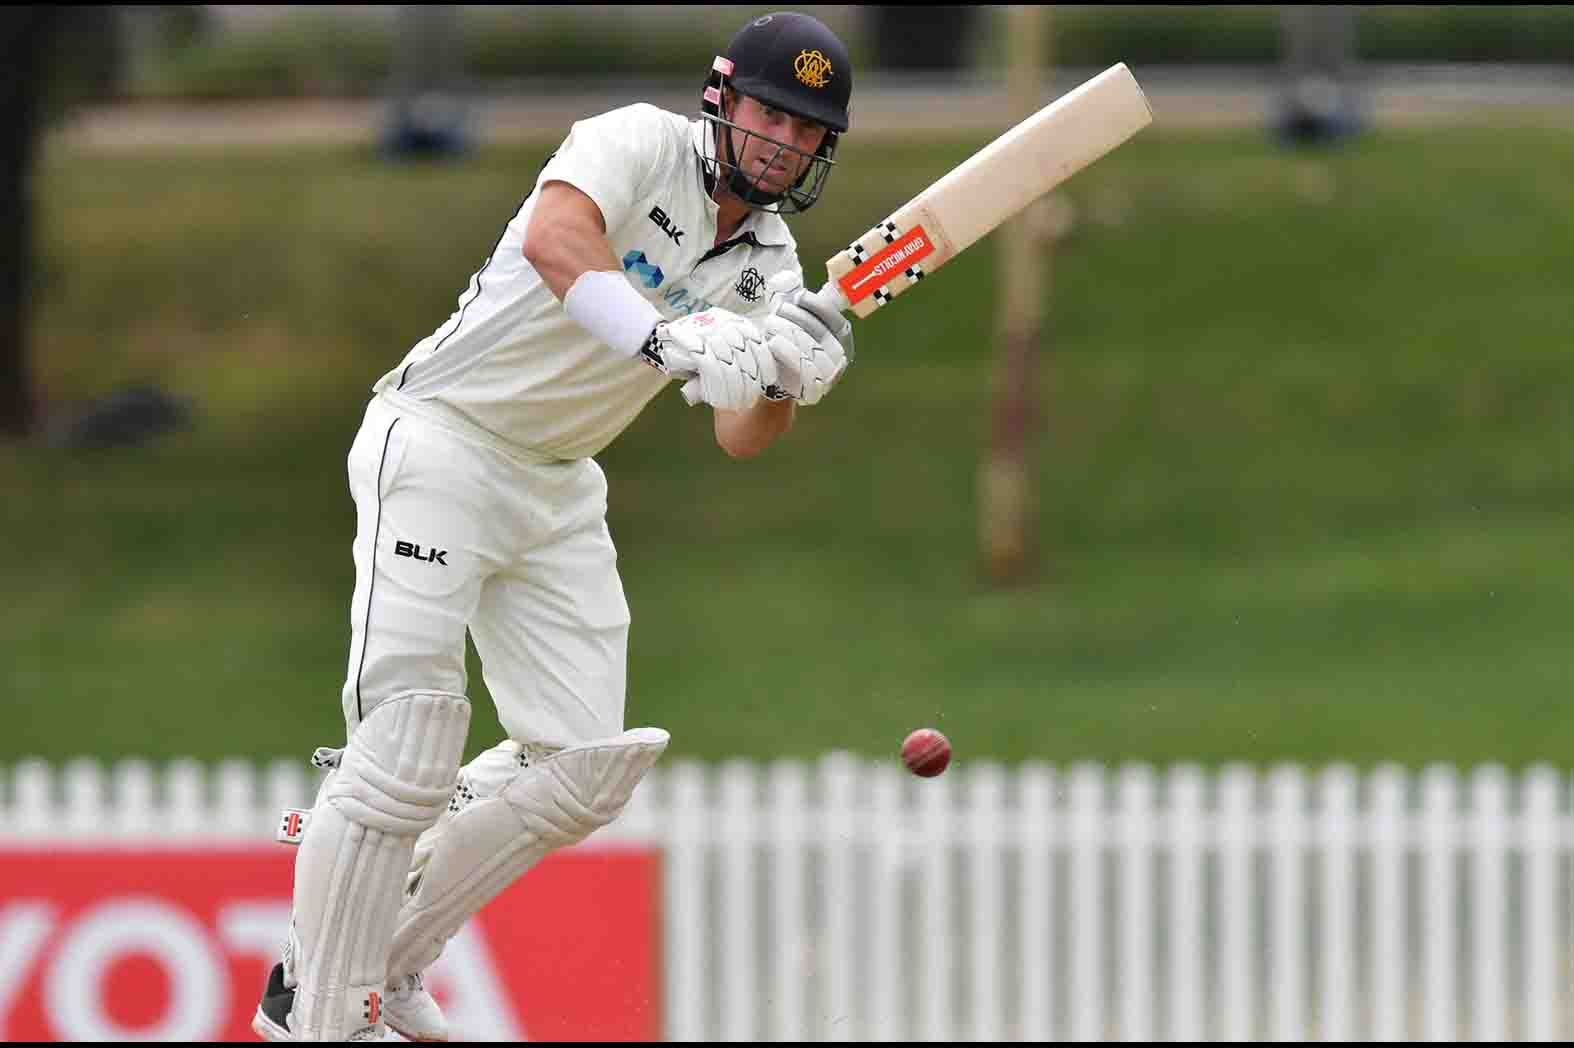 Shaun Marsh wins title of best domestic player of the year for the second time in a row